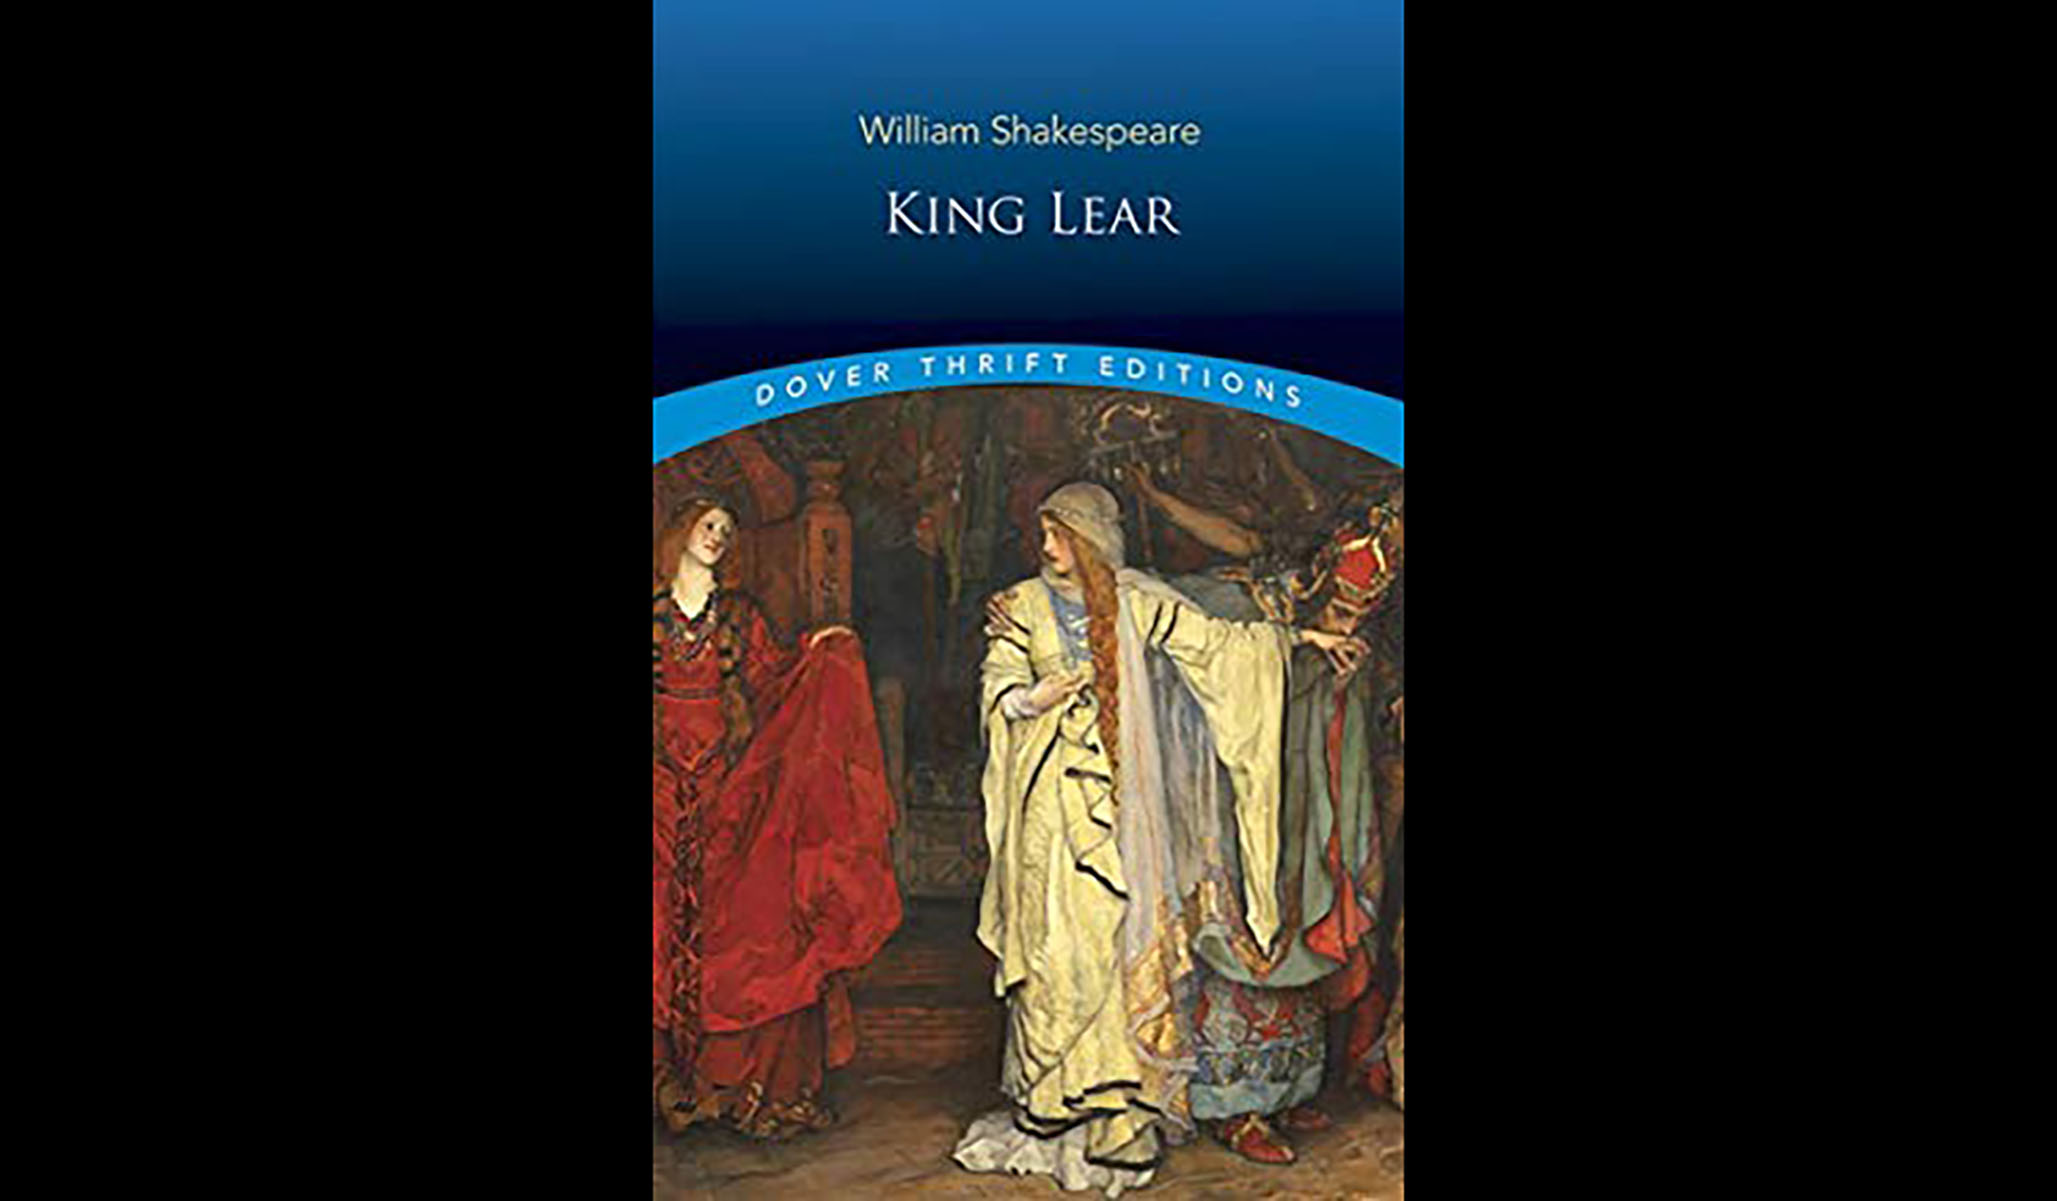 Episode 97: King Lear by William Shakespeare